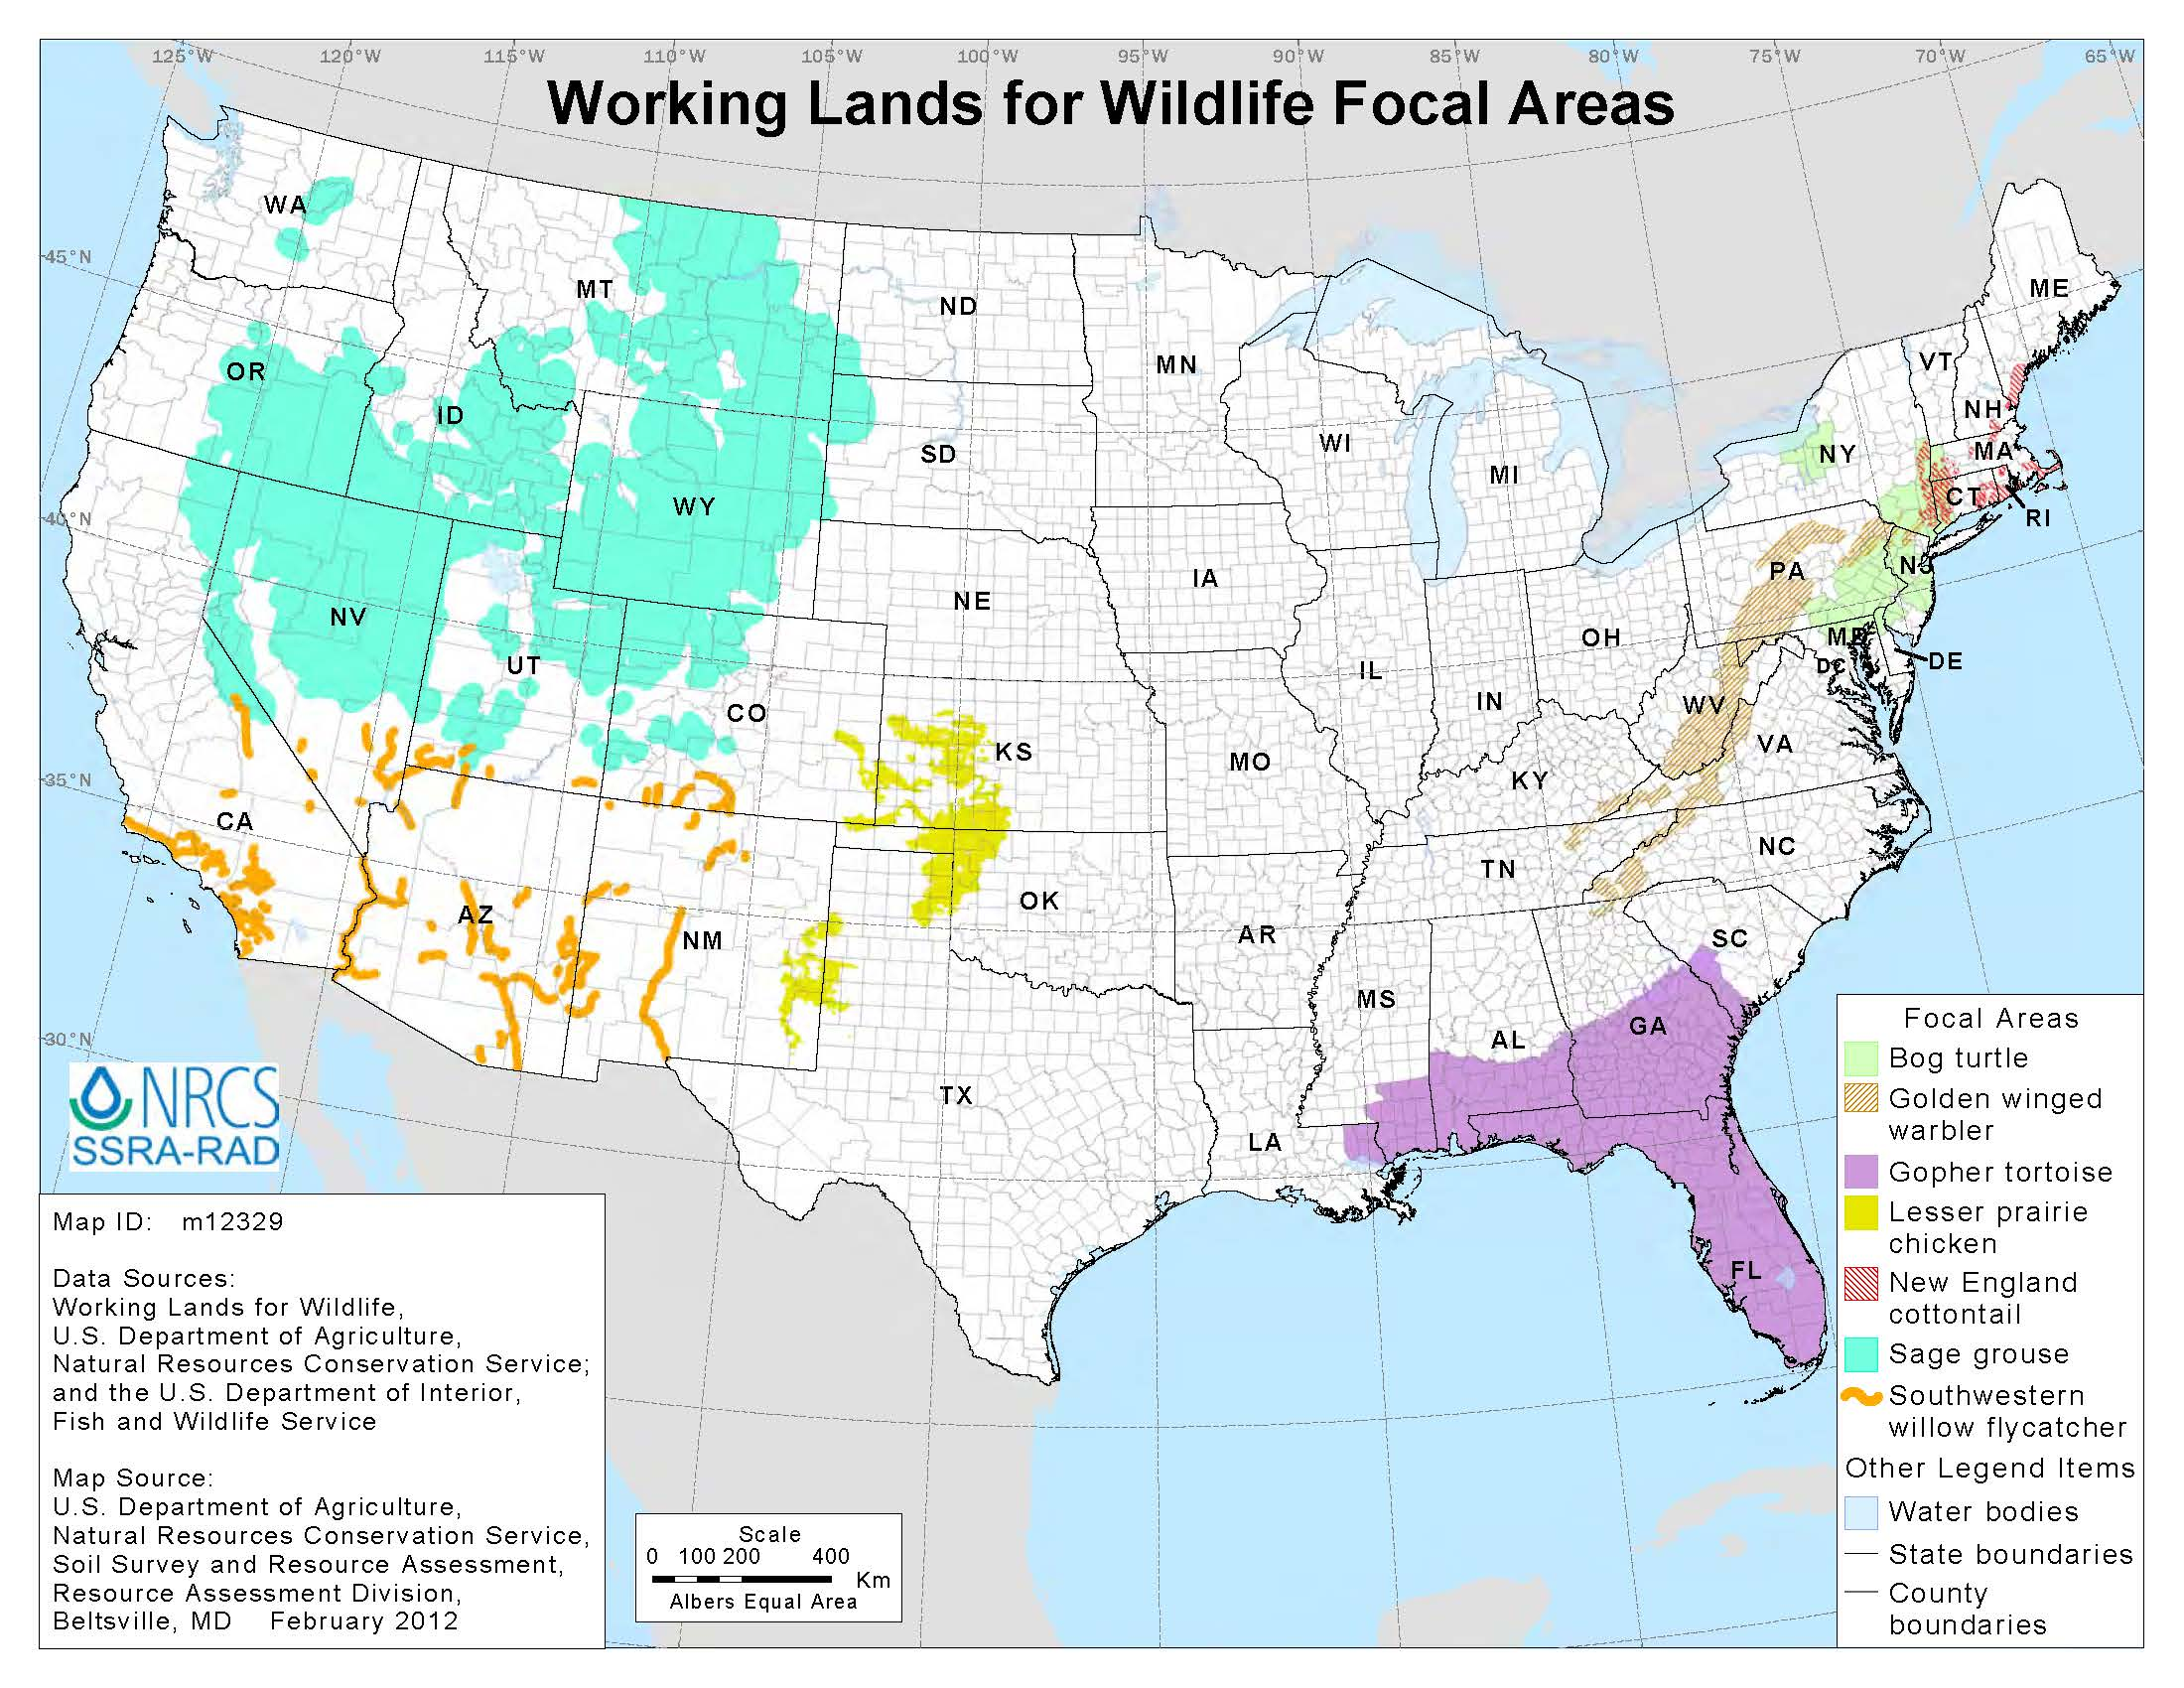 Working Lands for Wildlife image